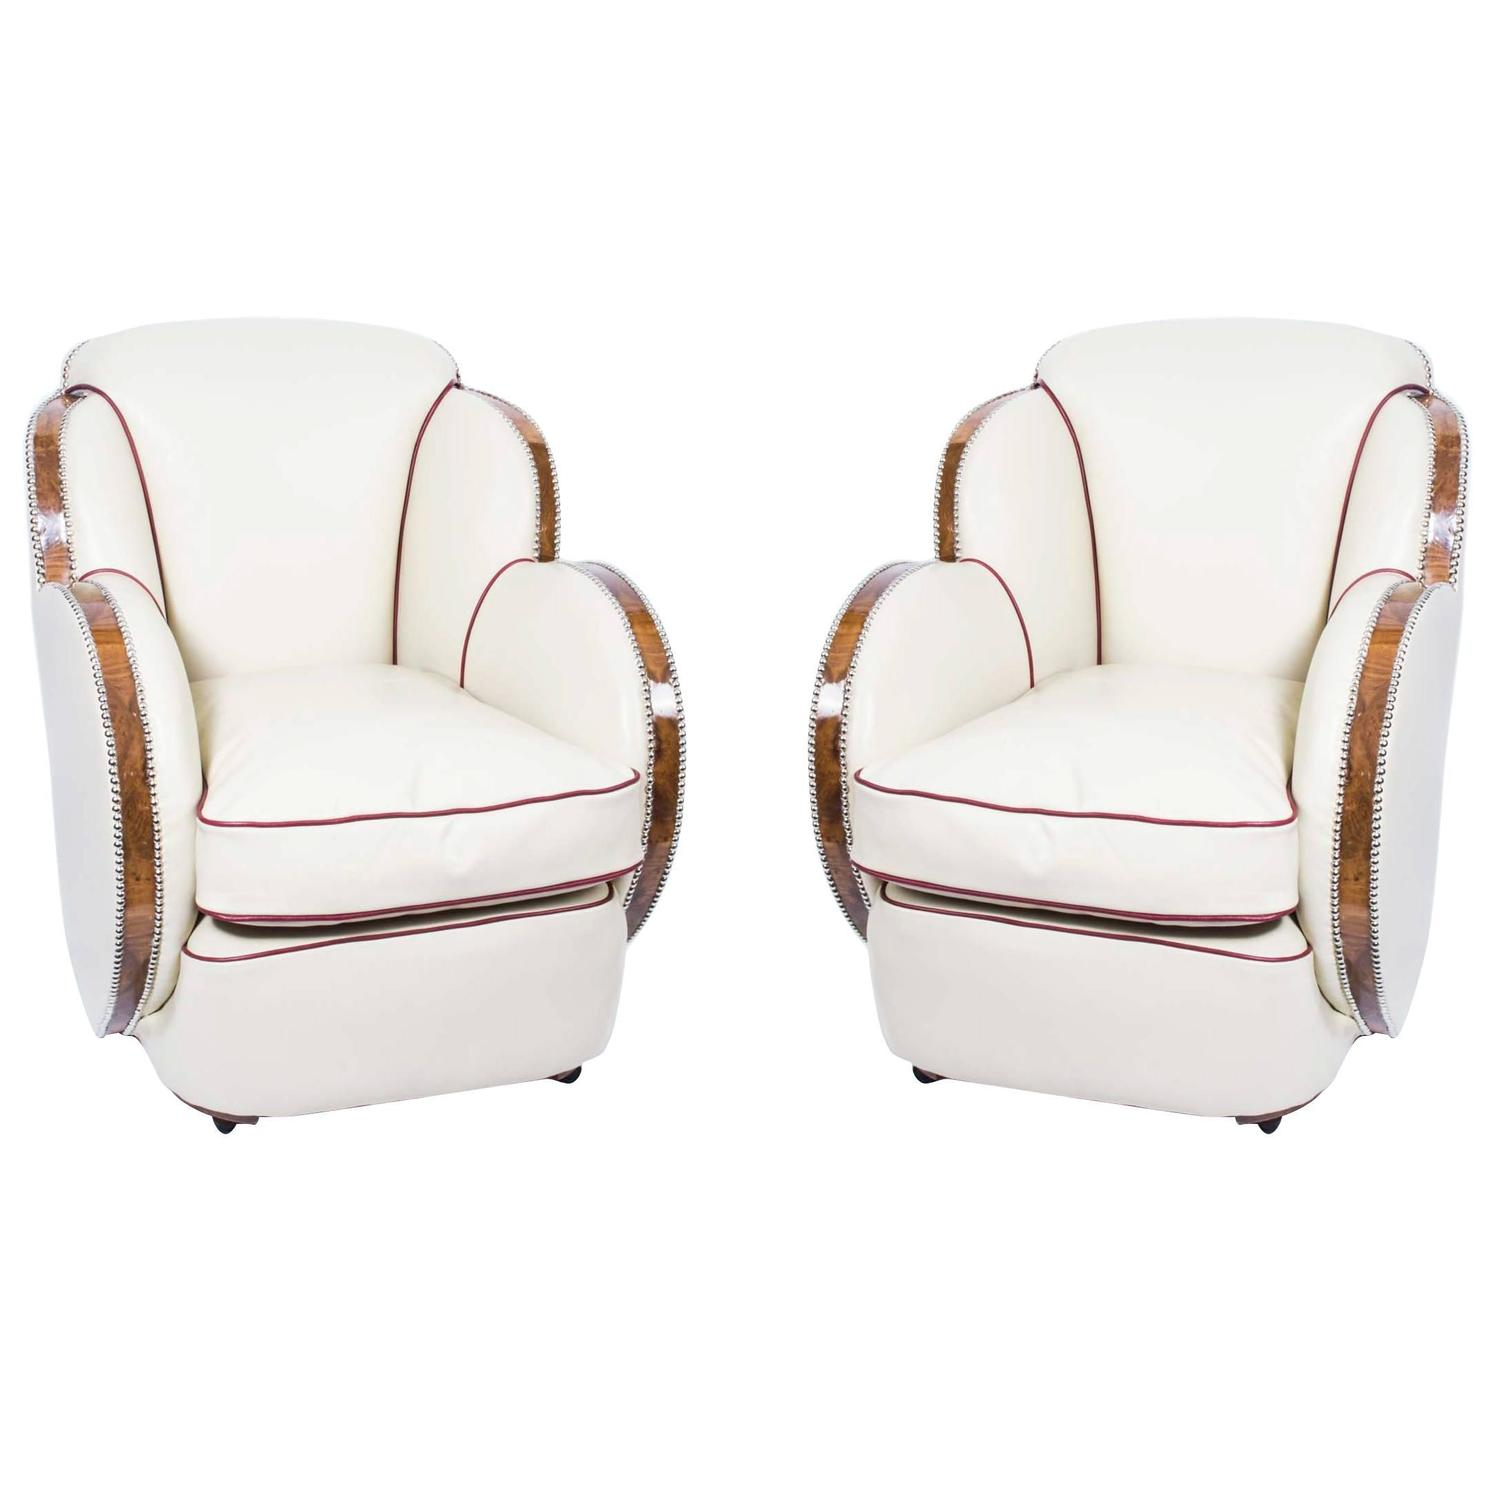 Art deco vintage leather sofa armchair - Antique Pair Of White Leather Art Deco Cloud Armchairs Circa 1930 For Sale At 1stdibs